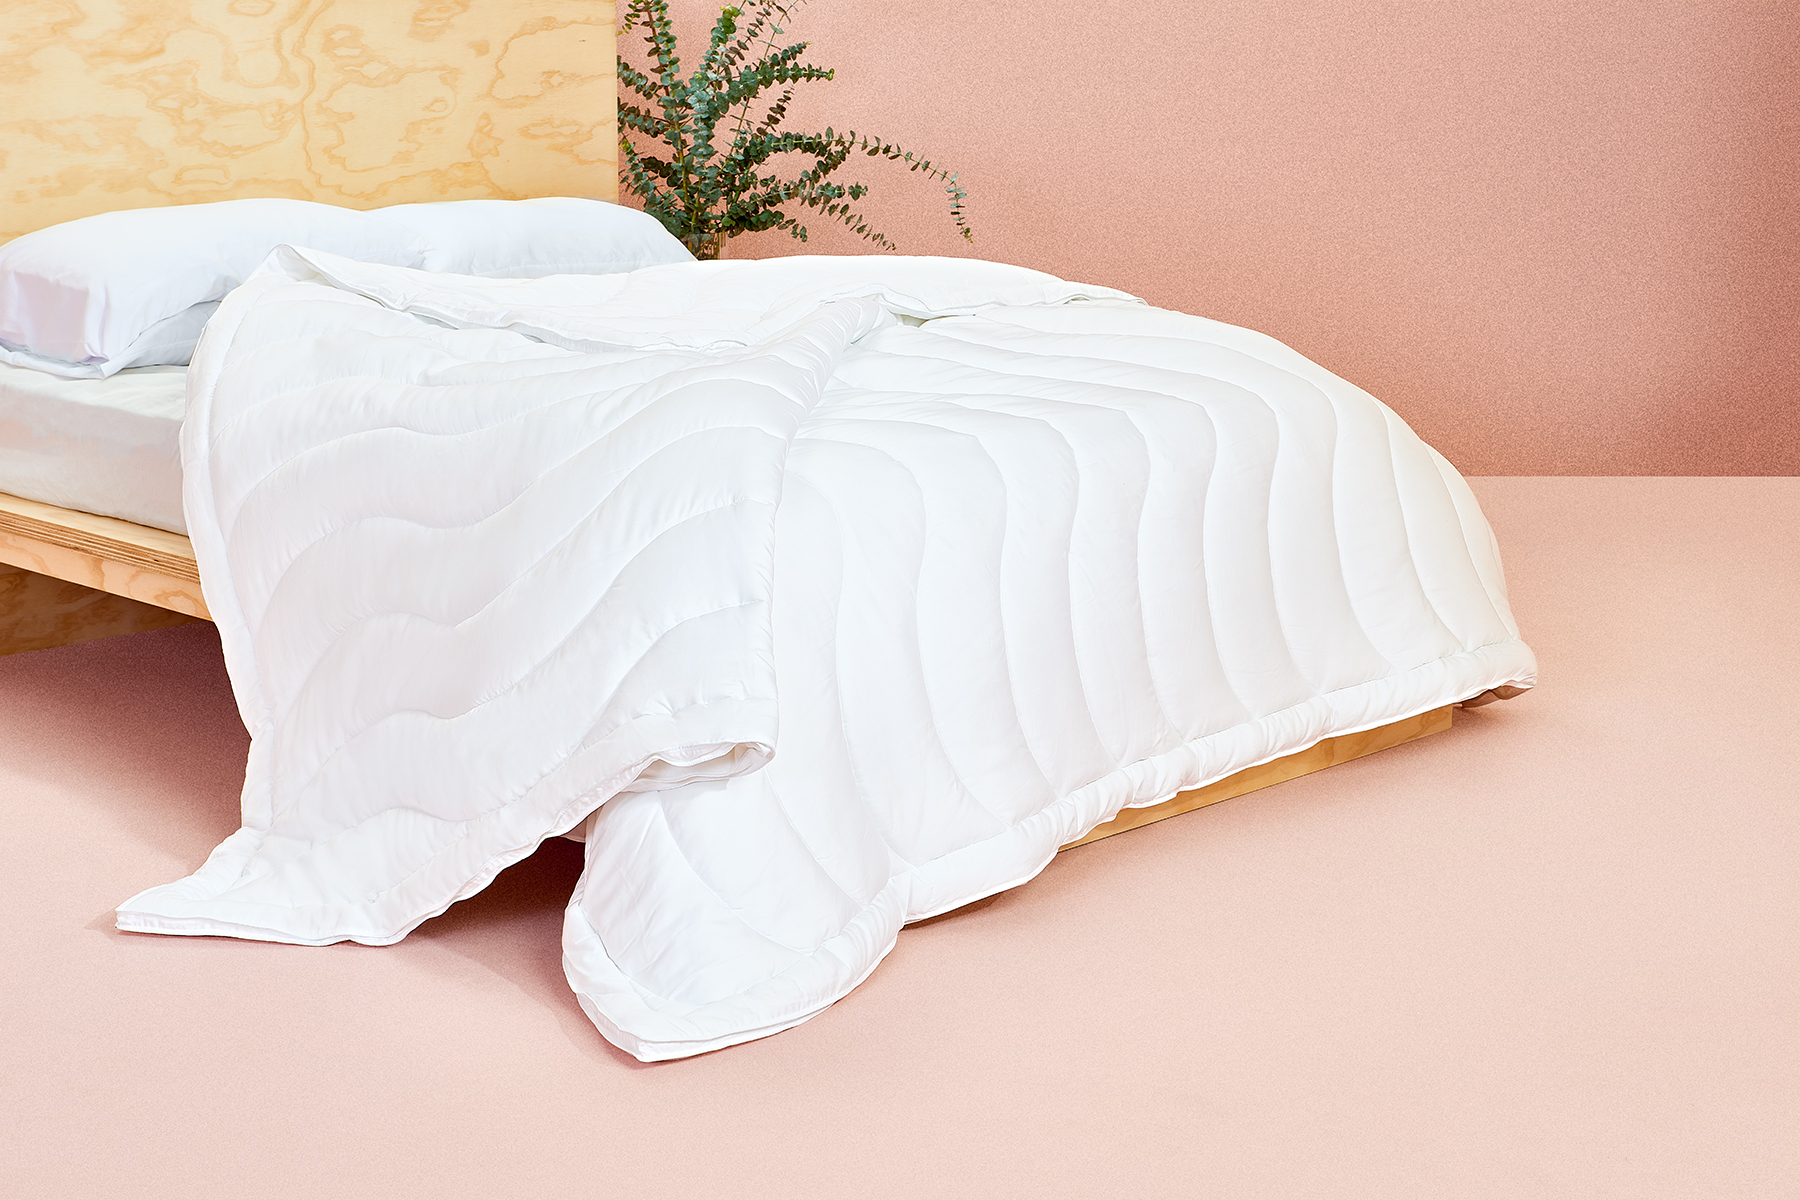 This Cult Favorite Bedding Brand Released A Eucalyptus Cooling Comforter That Will Help You Sleep